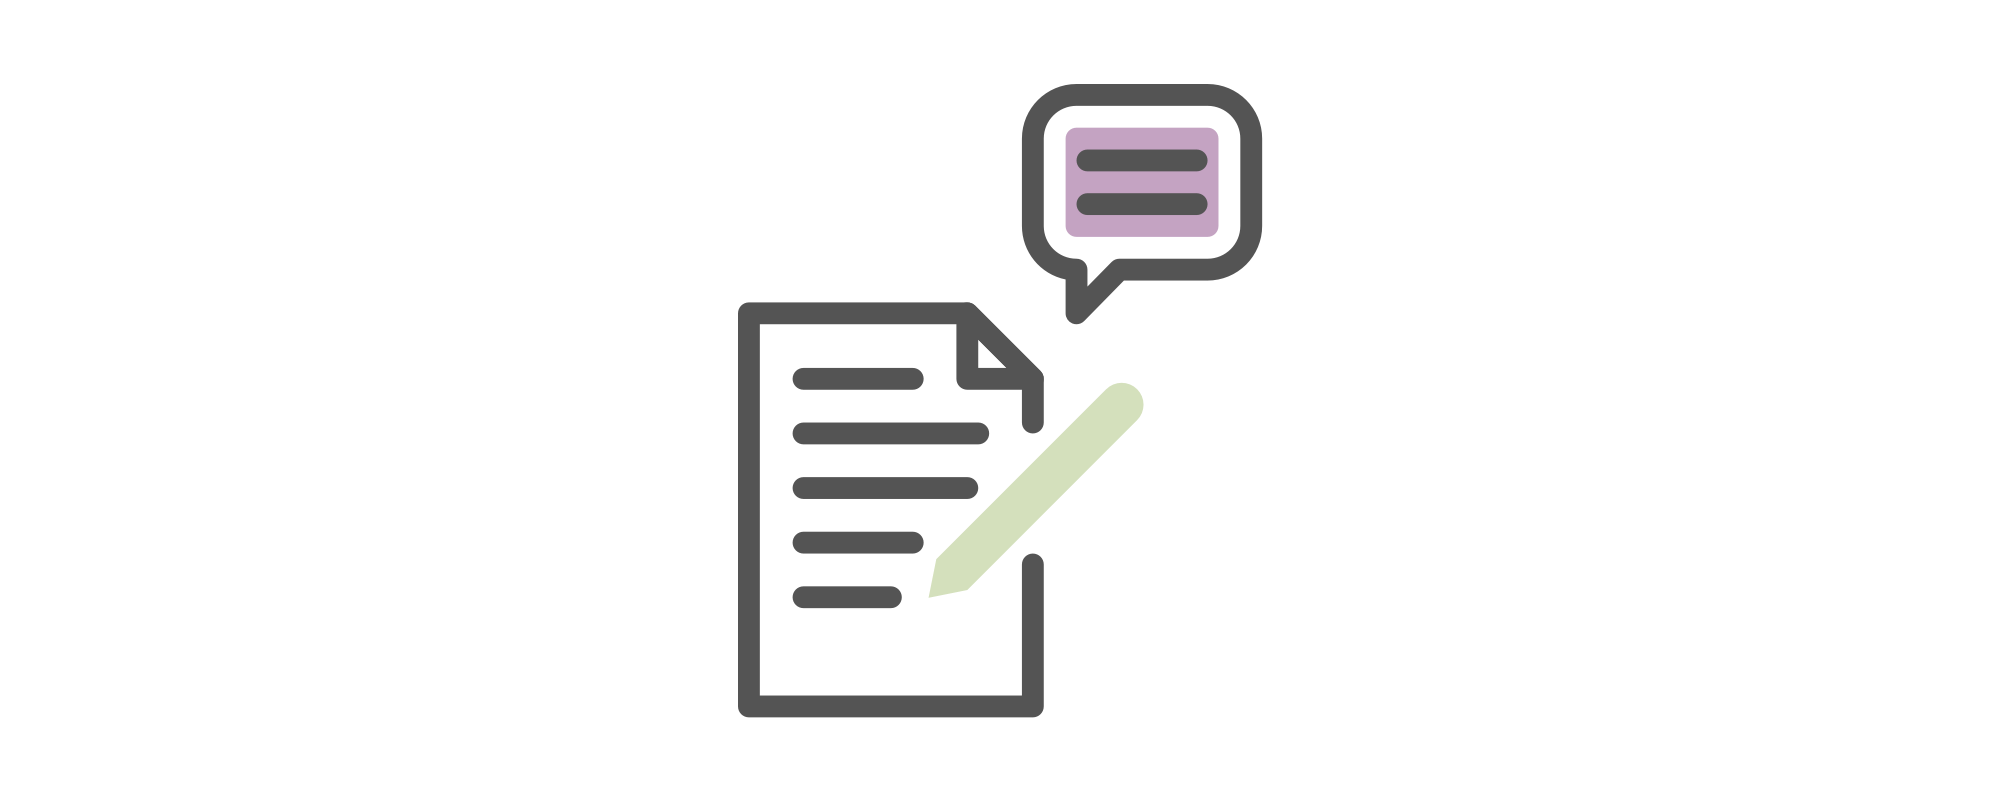 icon-templates-checklists.png